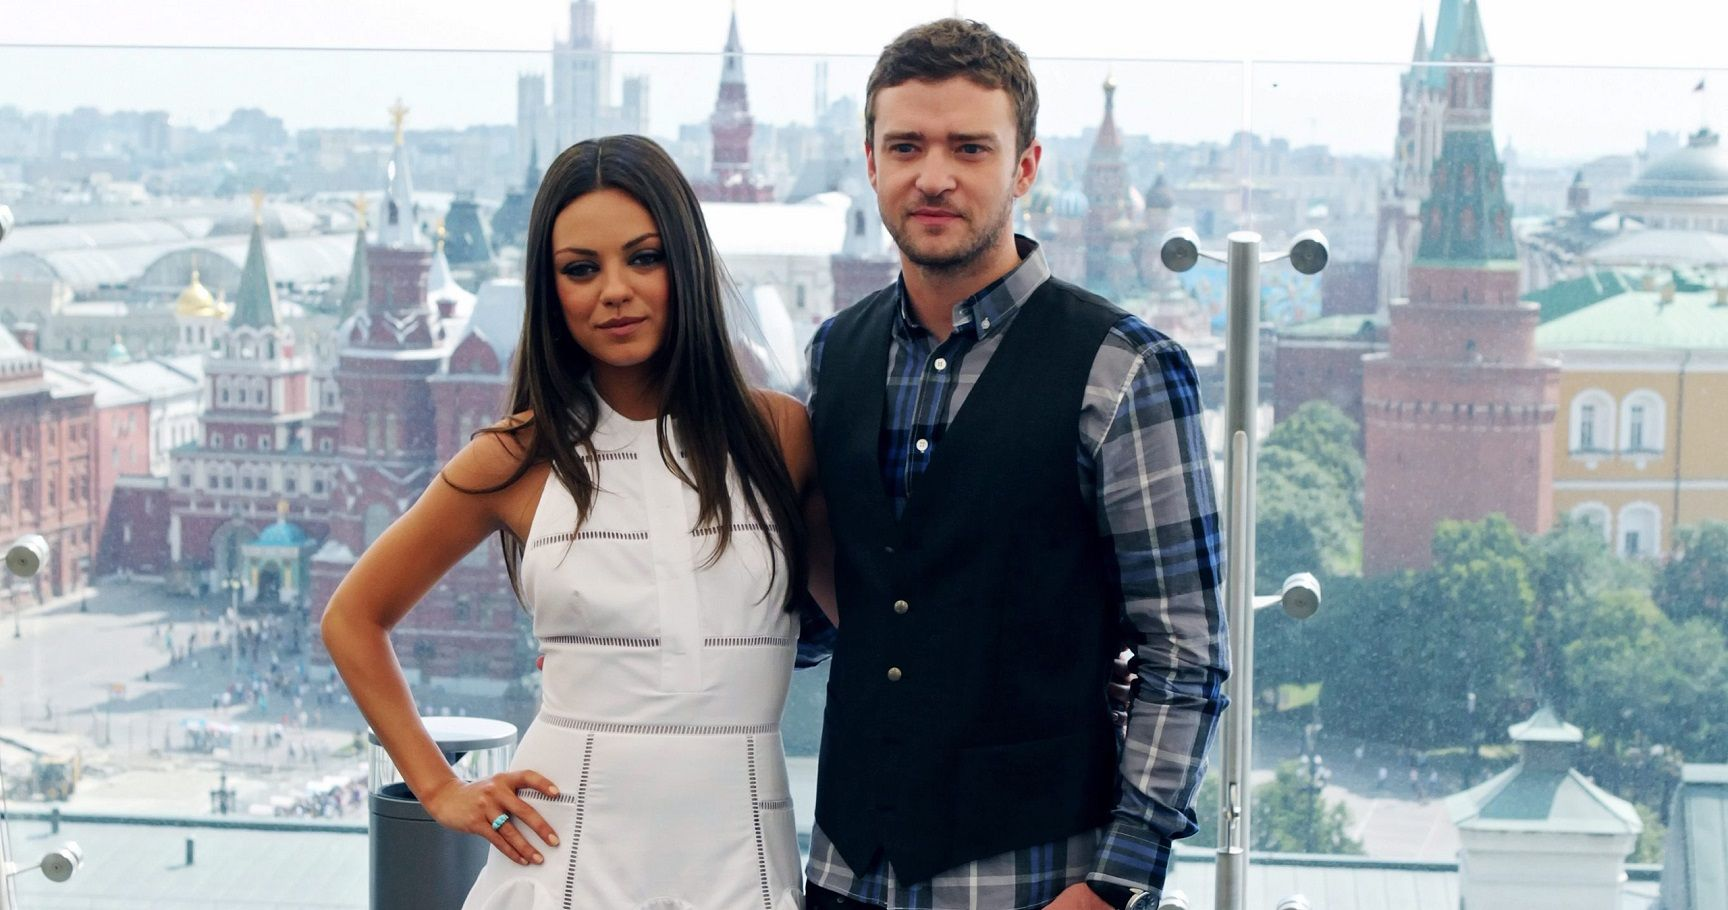 The 20 Hottest Women Justin Timberlake Has Been With